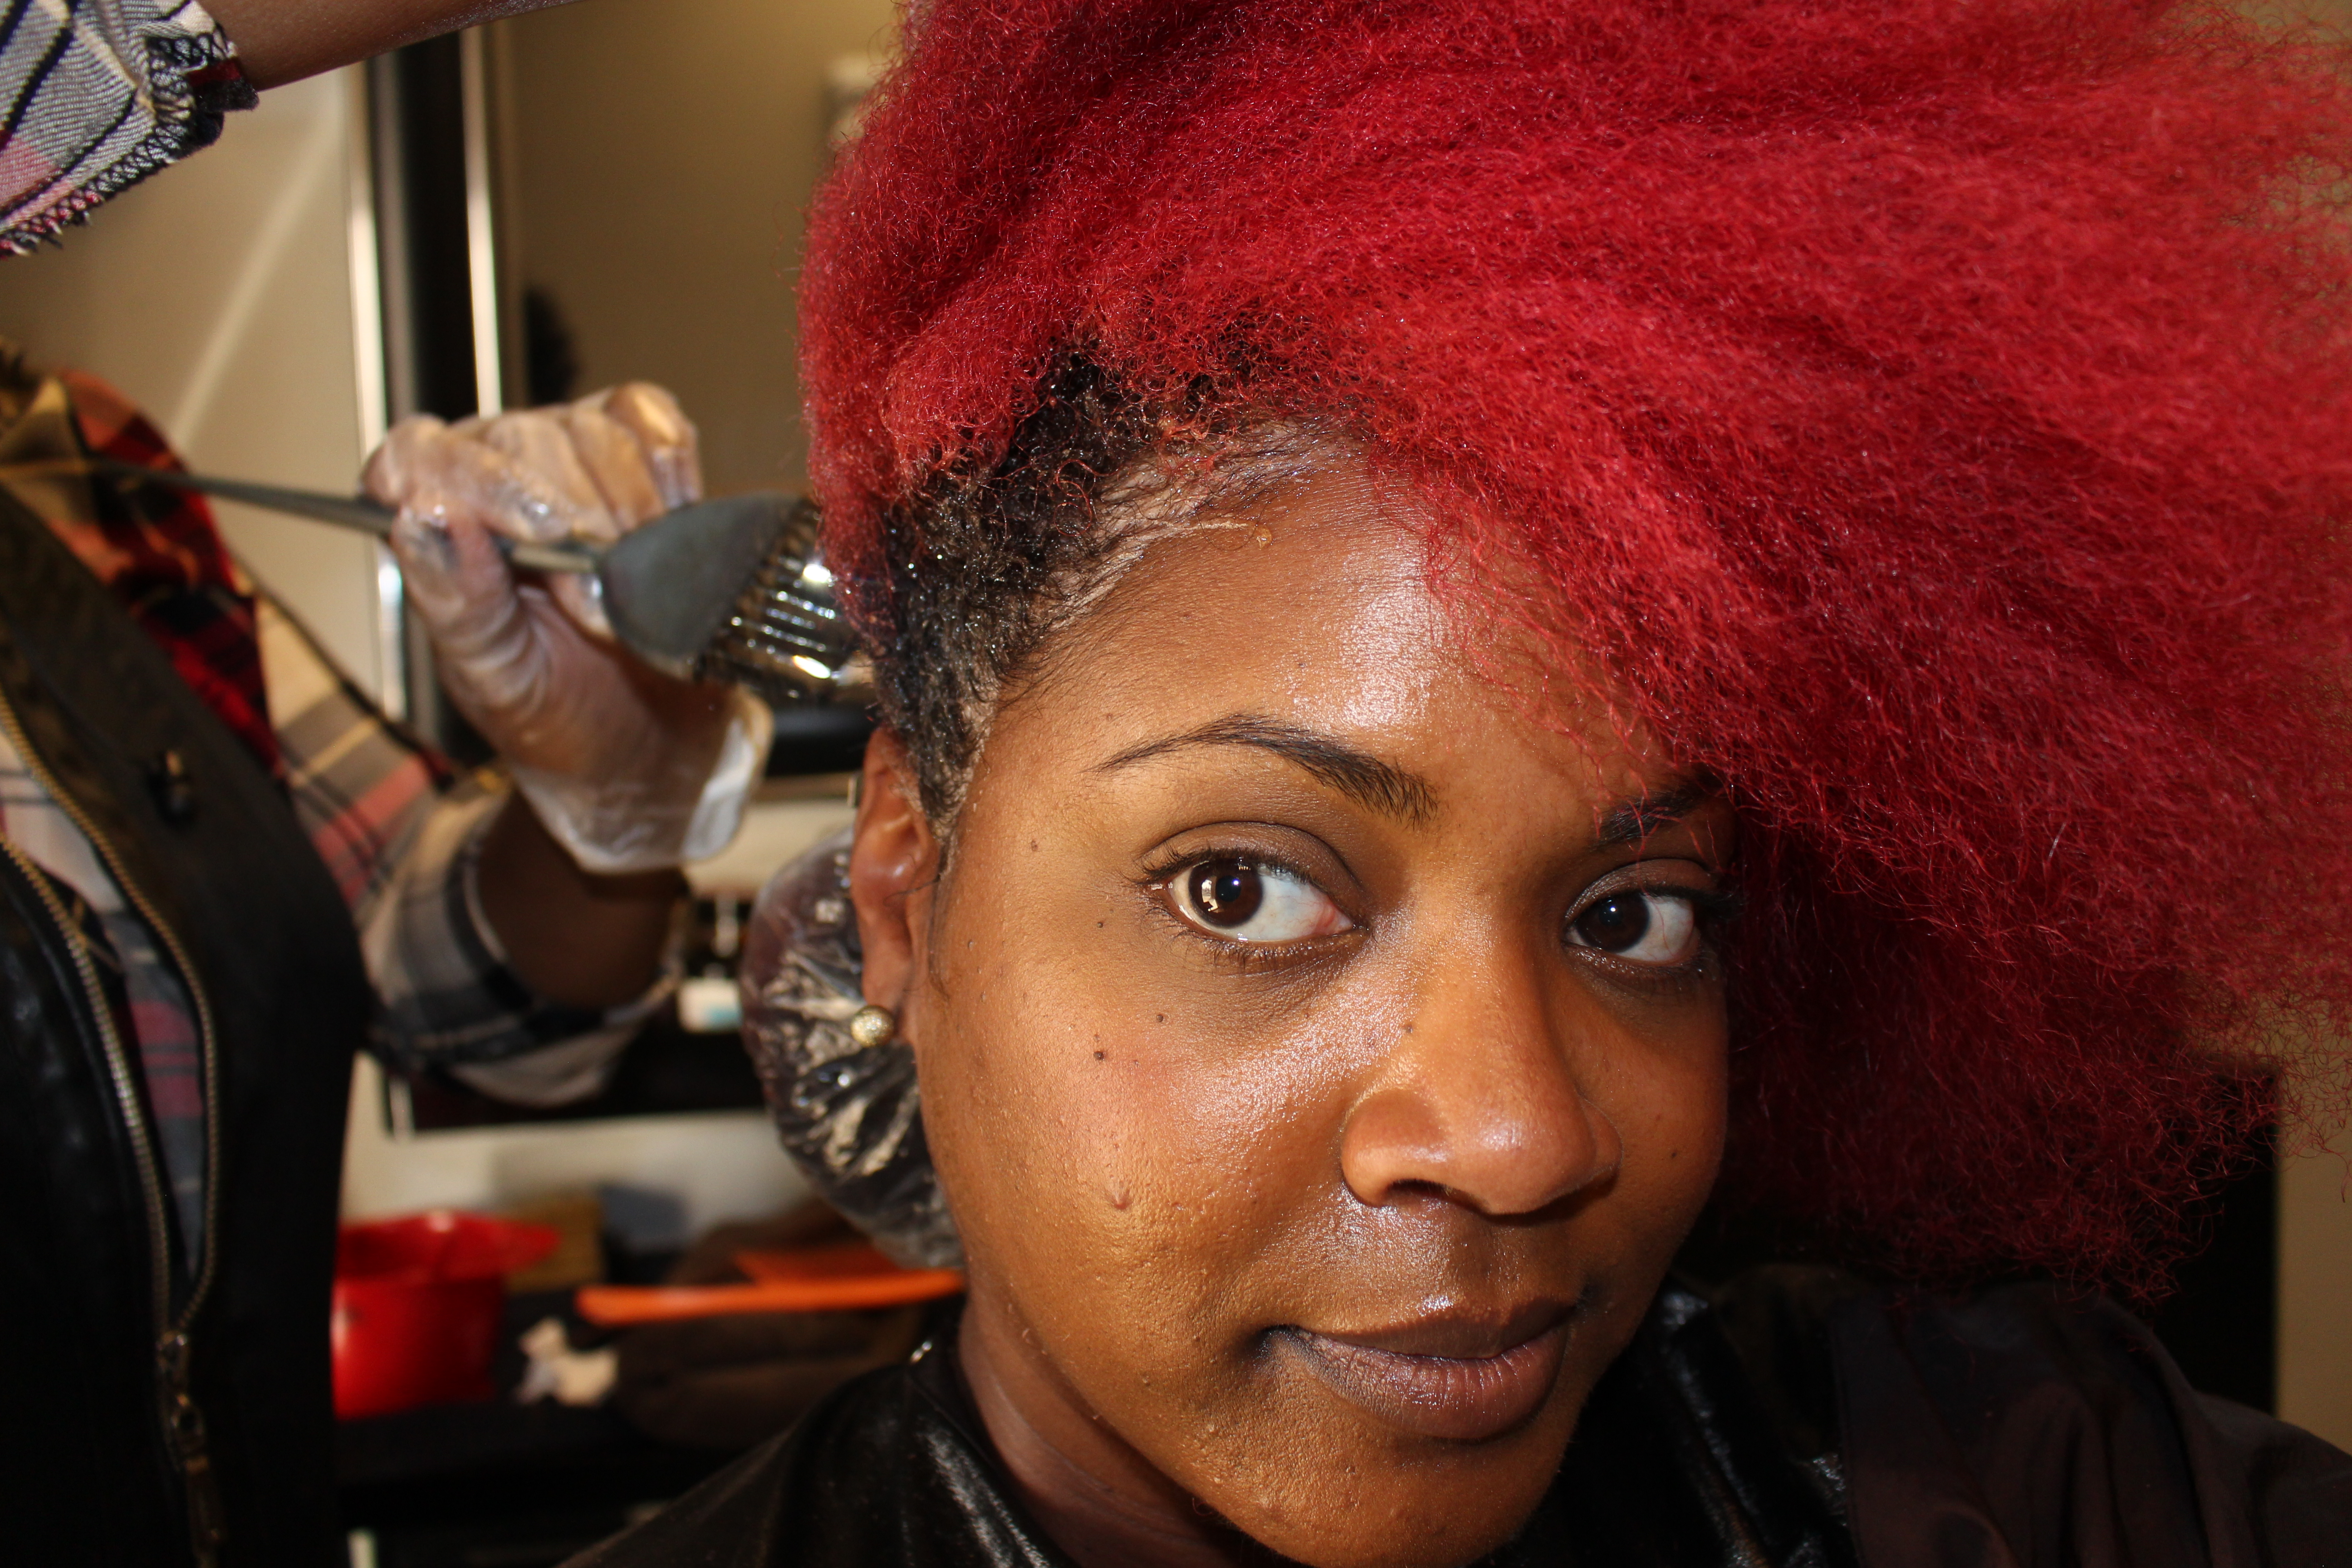 Red Hair Color | How to Dye Natural Hair Red